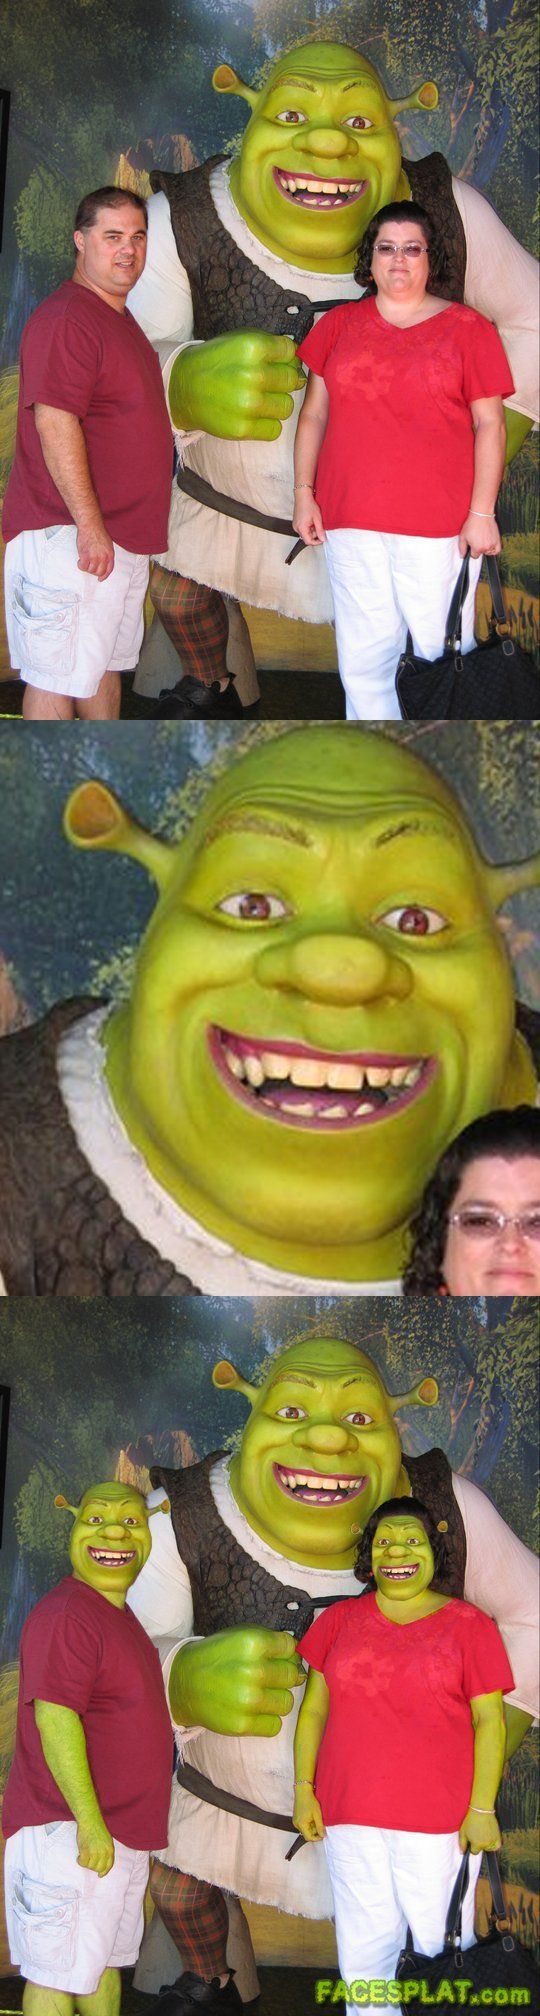 face swap | shrek-face-swap.jpg